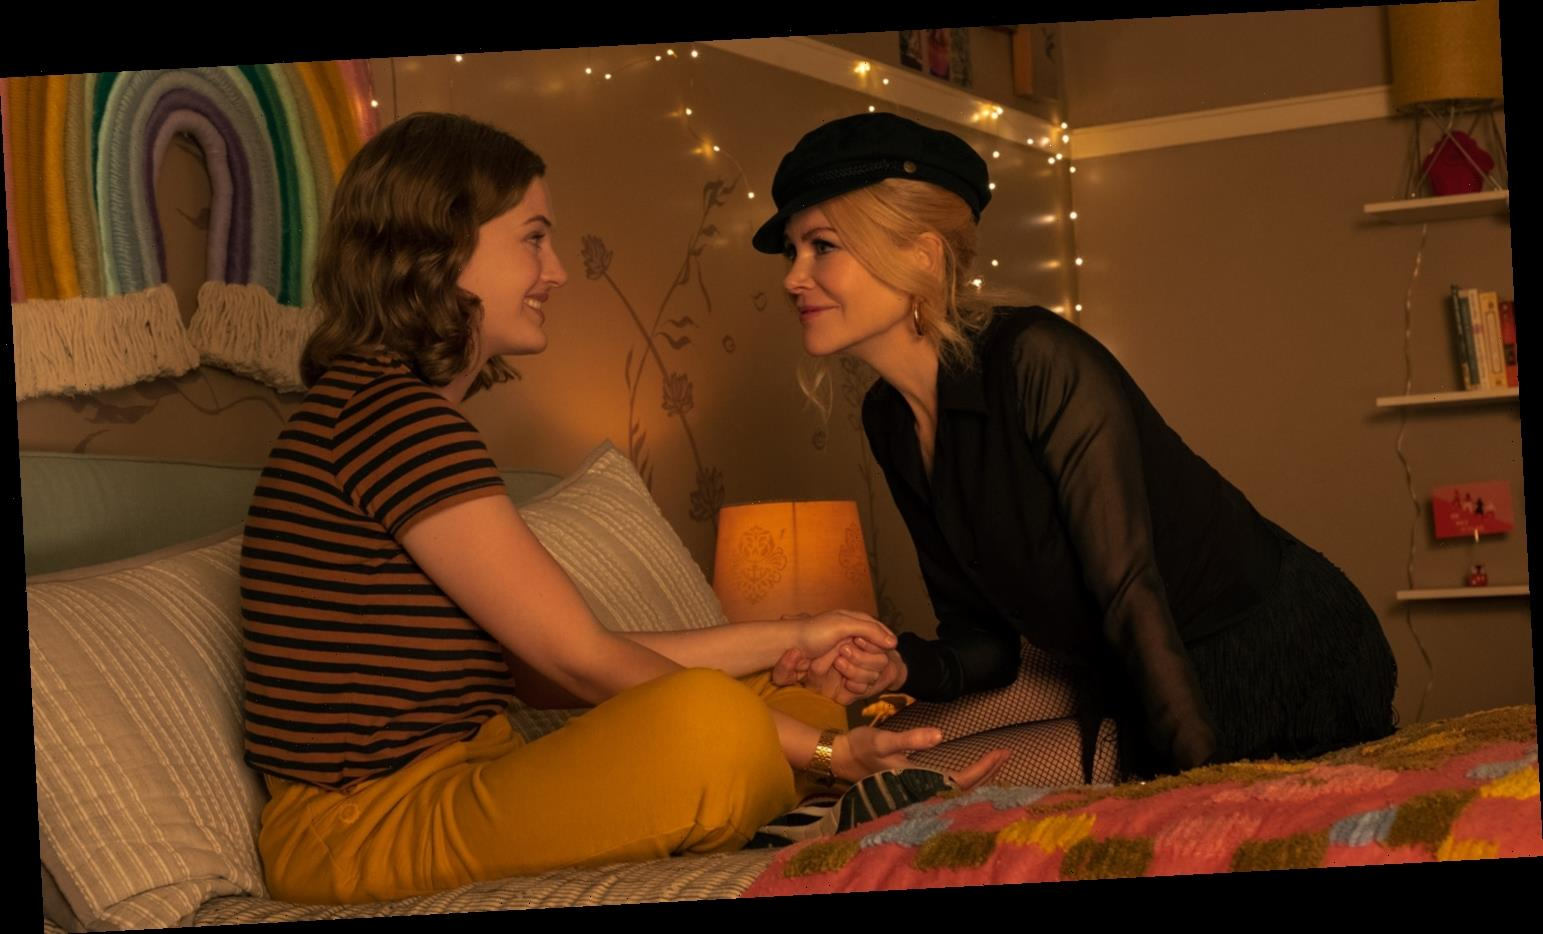 Nicole Kidman Gives Us Fosse Moves in 'Zazz,' Her Big Song in 'The Prom' – Watch Now!